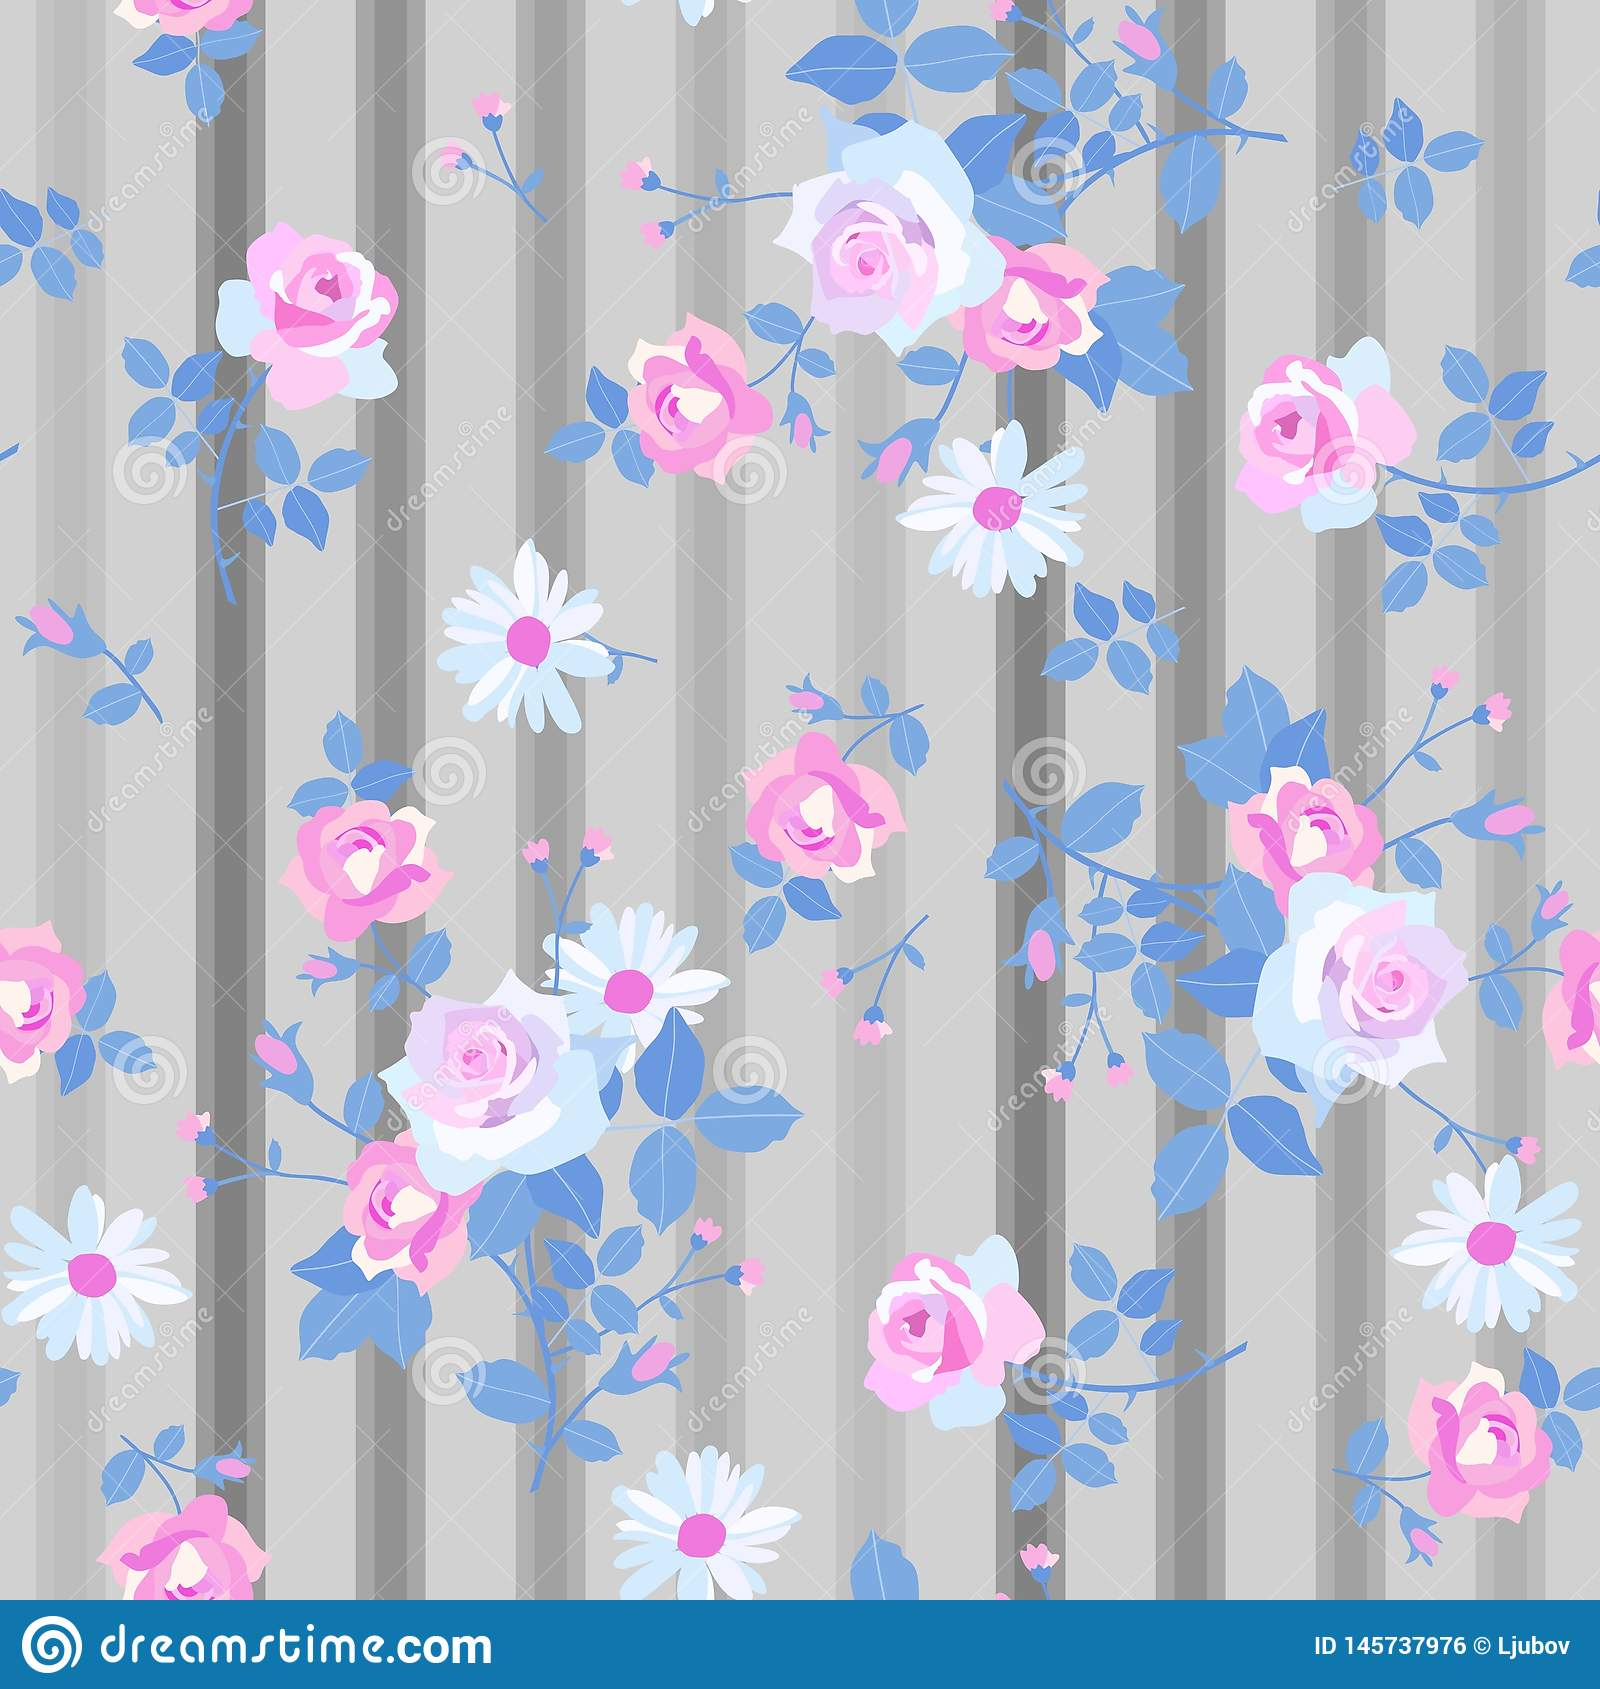 Seamless floral pattern with romantic bunches of rose and daisy flowers on striped grey background. Print for fabric